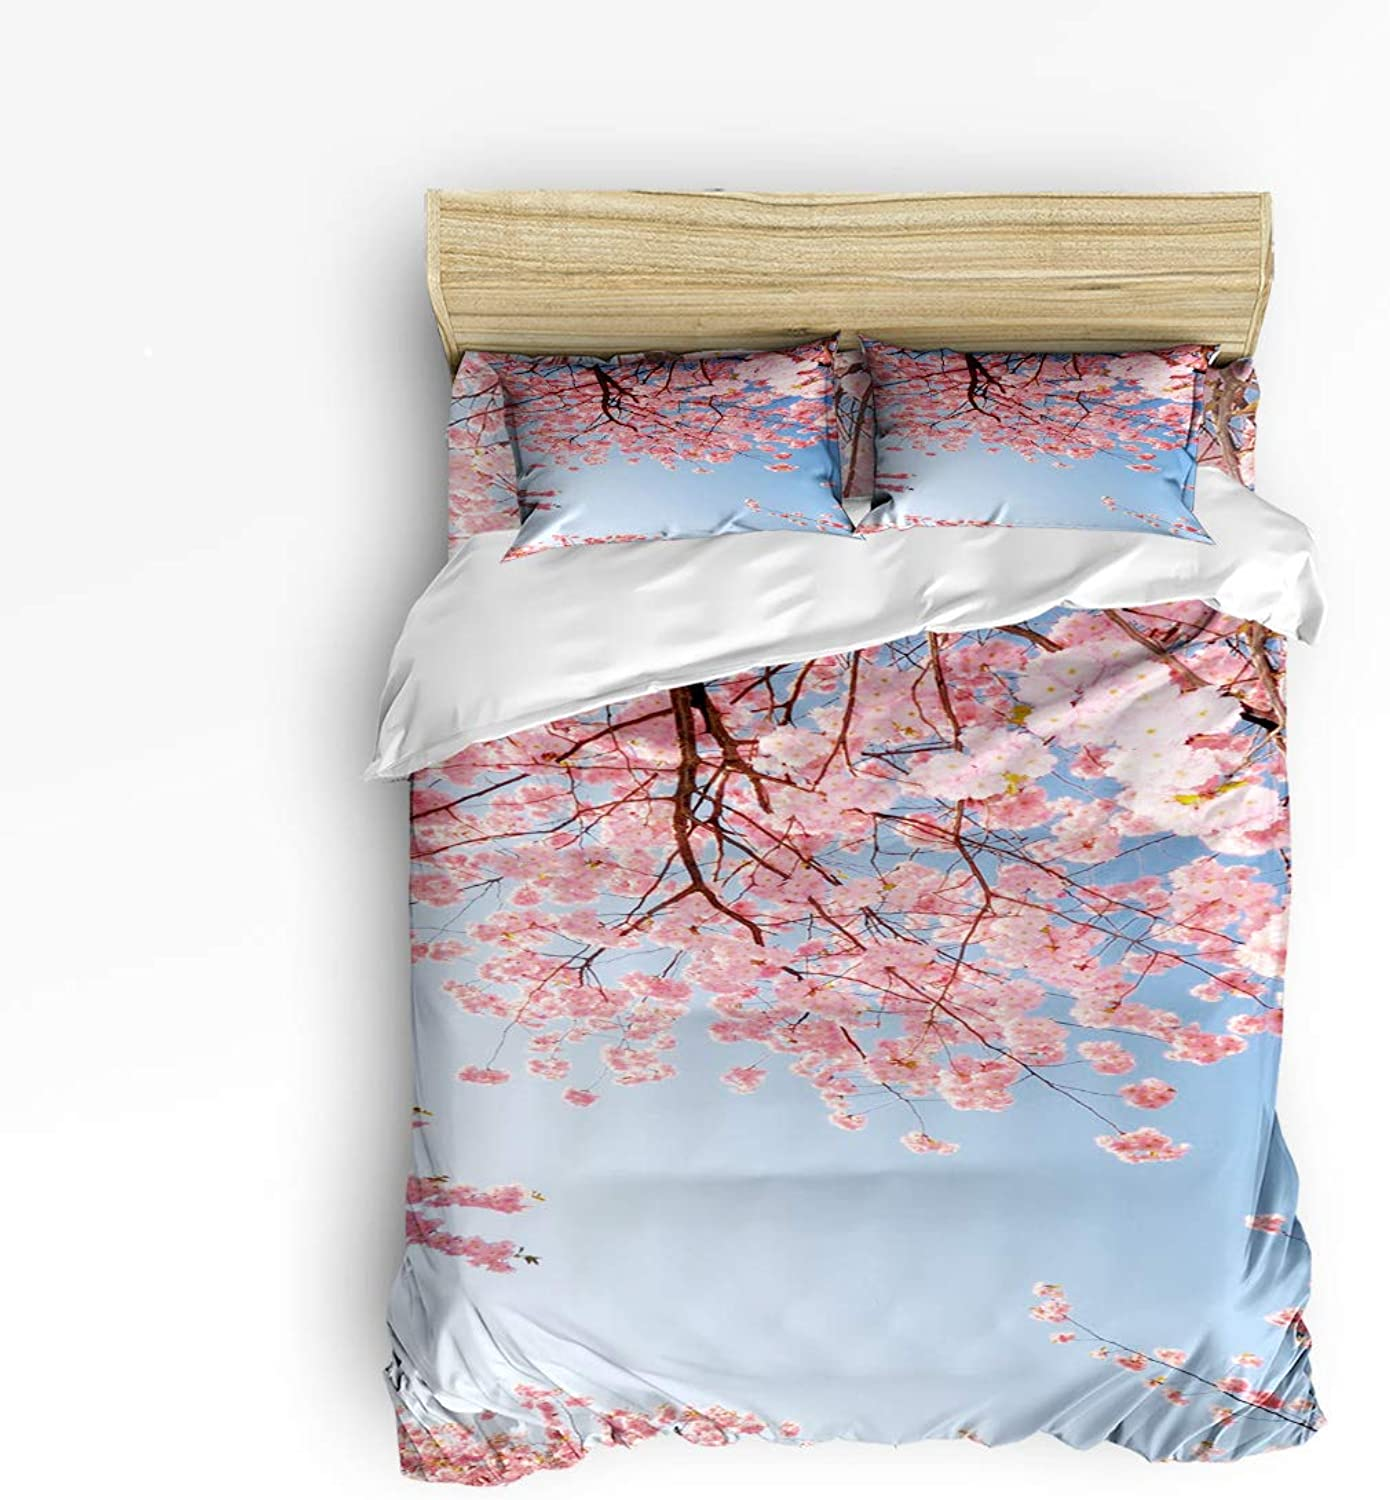 Fandim Fly Bedding Set Twin Size Japanese Style,Pink Cherry Blossoms,Comforter Cover Sets for All Season